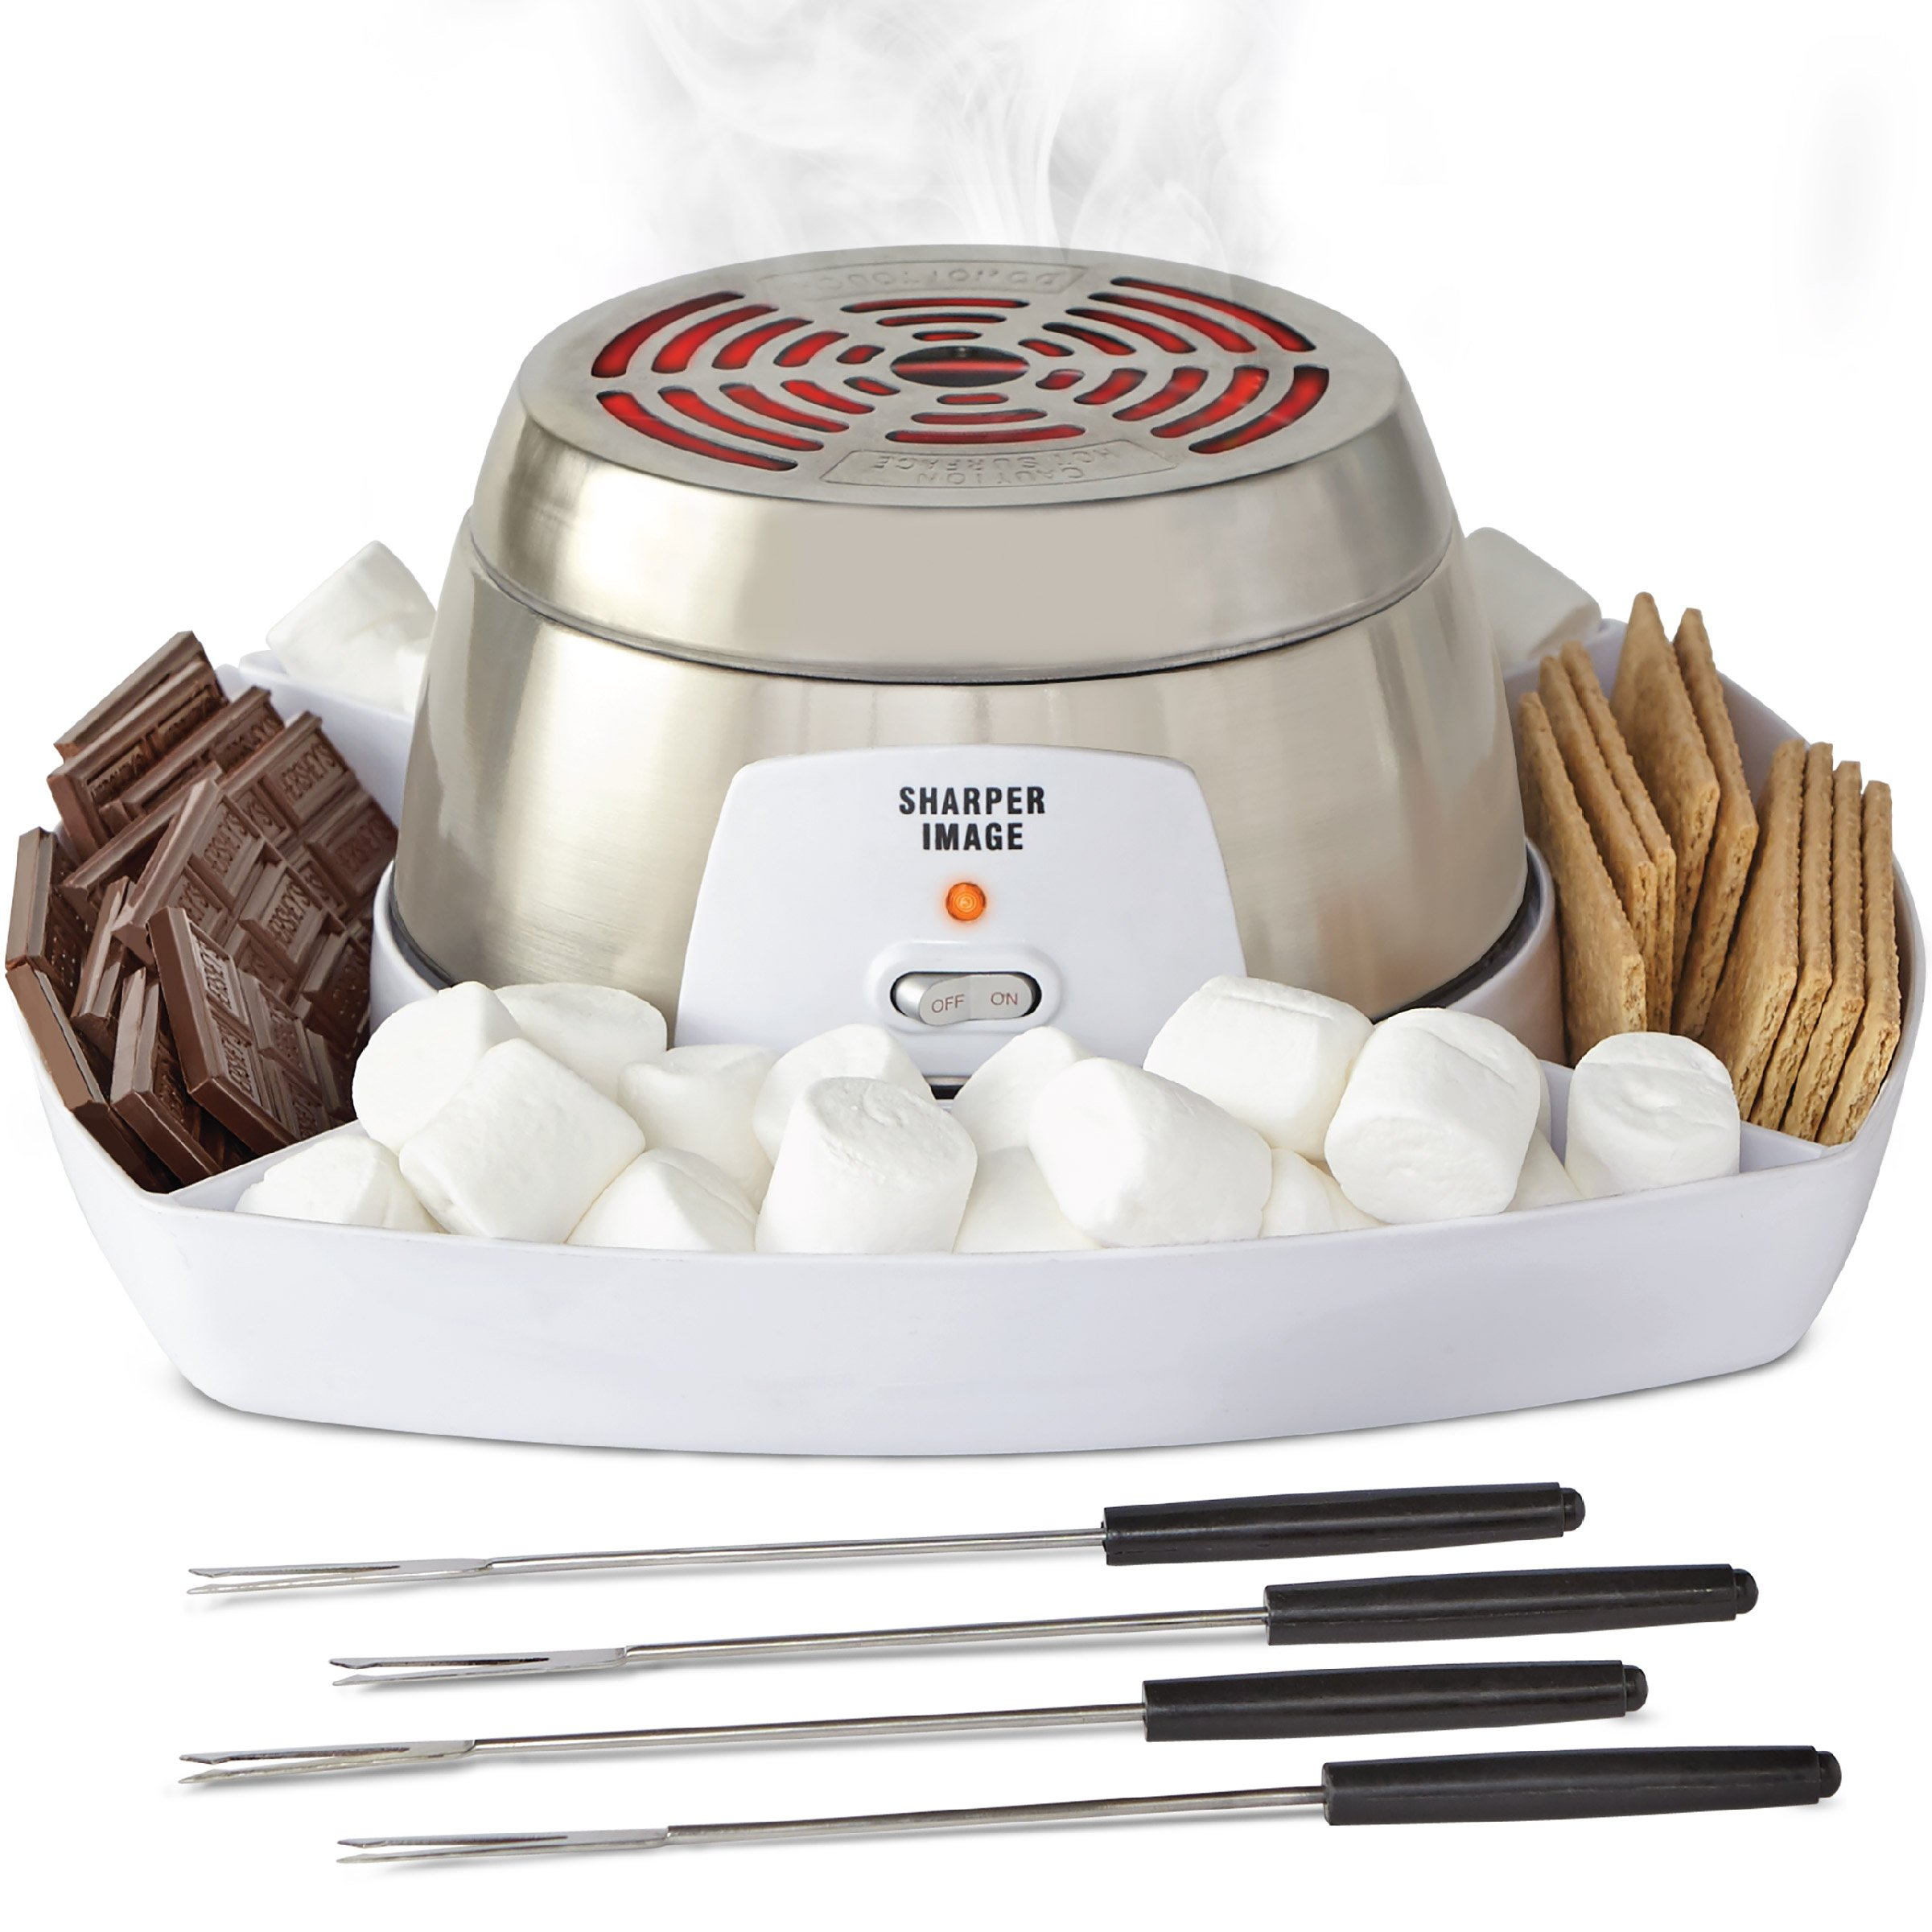 Sharper Image Electric Tabletop S'mores Maker for Indoors, 6 Piece Set Includes Stainless Steel Range, Serving Tray w/Compartments for Chocolate, Graham Crackers, Marshmallows, 4 Roasting Forks